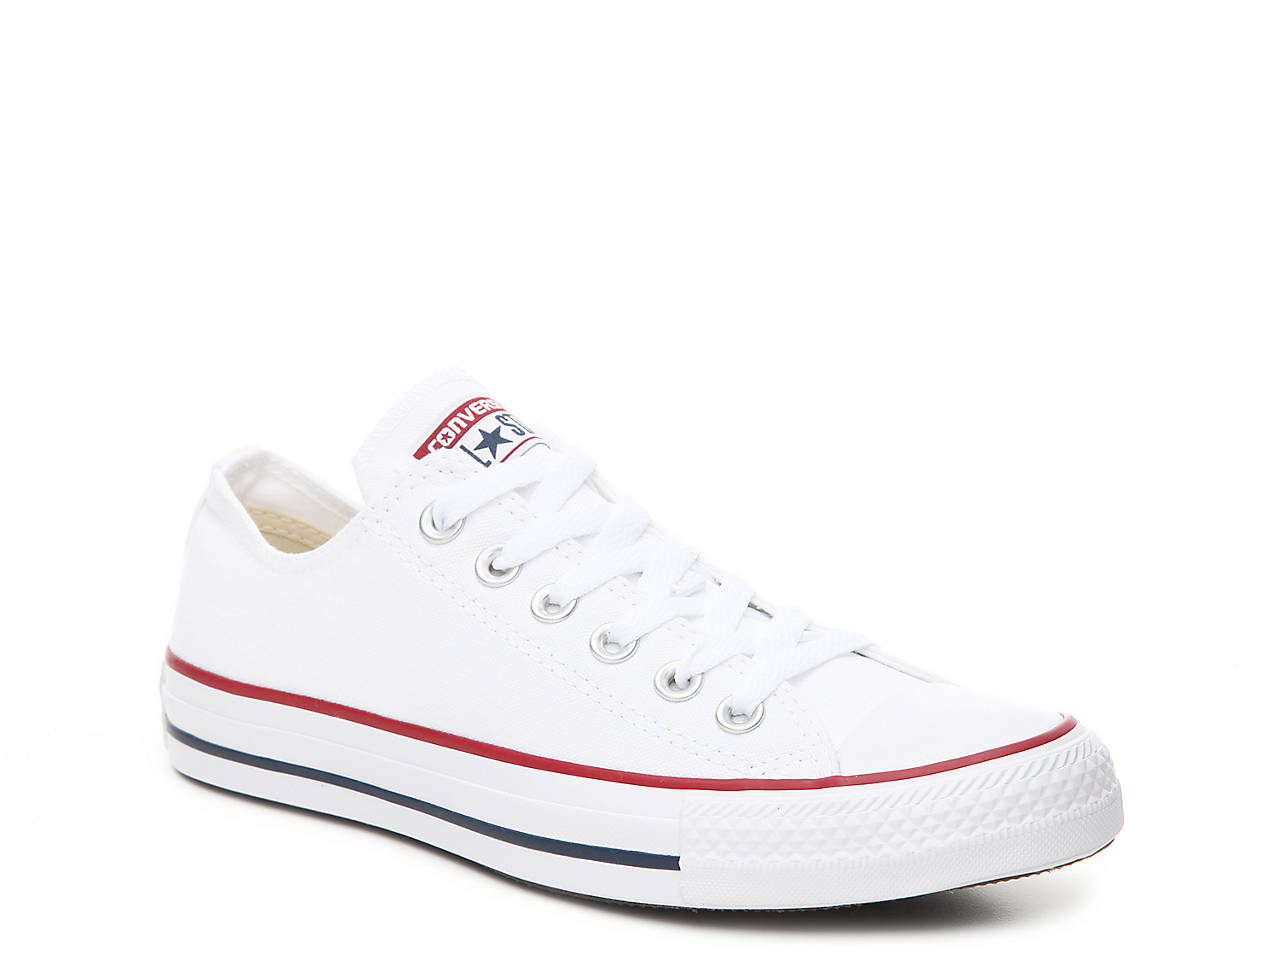 4678eca5b267 Converse Chuck Taylor All Star Sneaker - Women s Women s Shoes